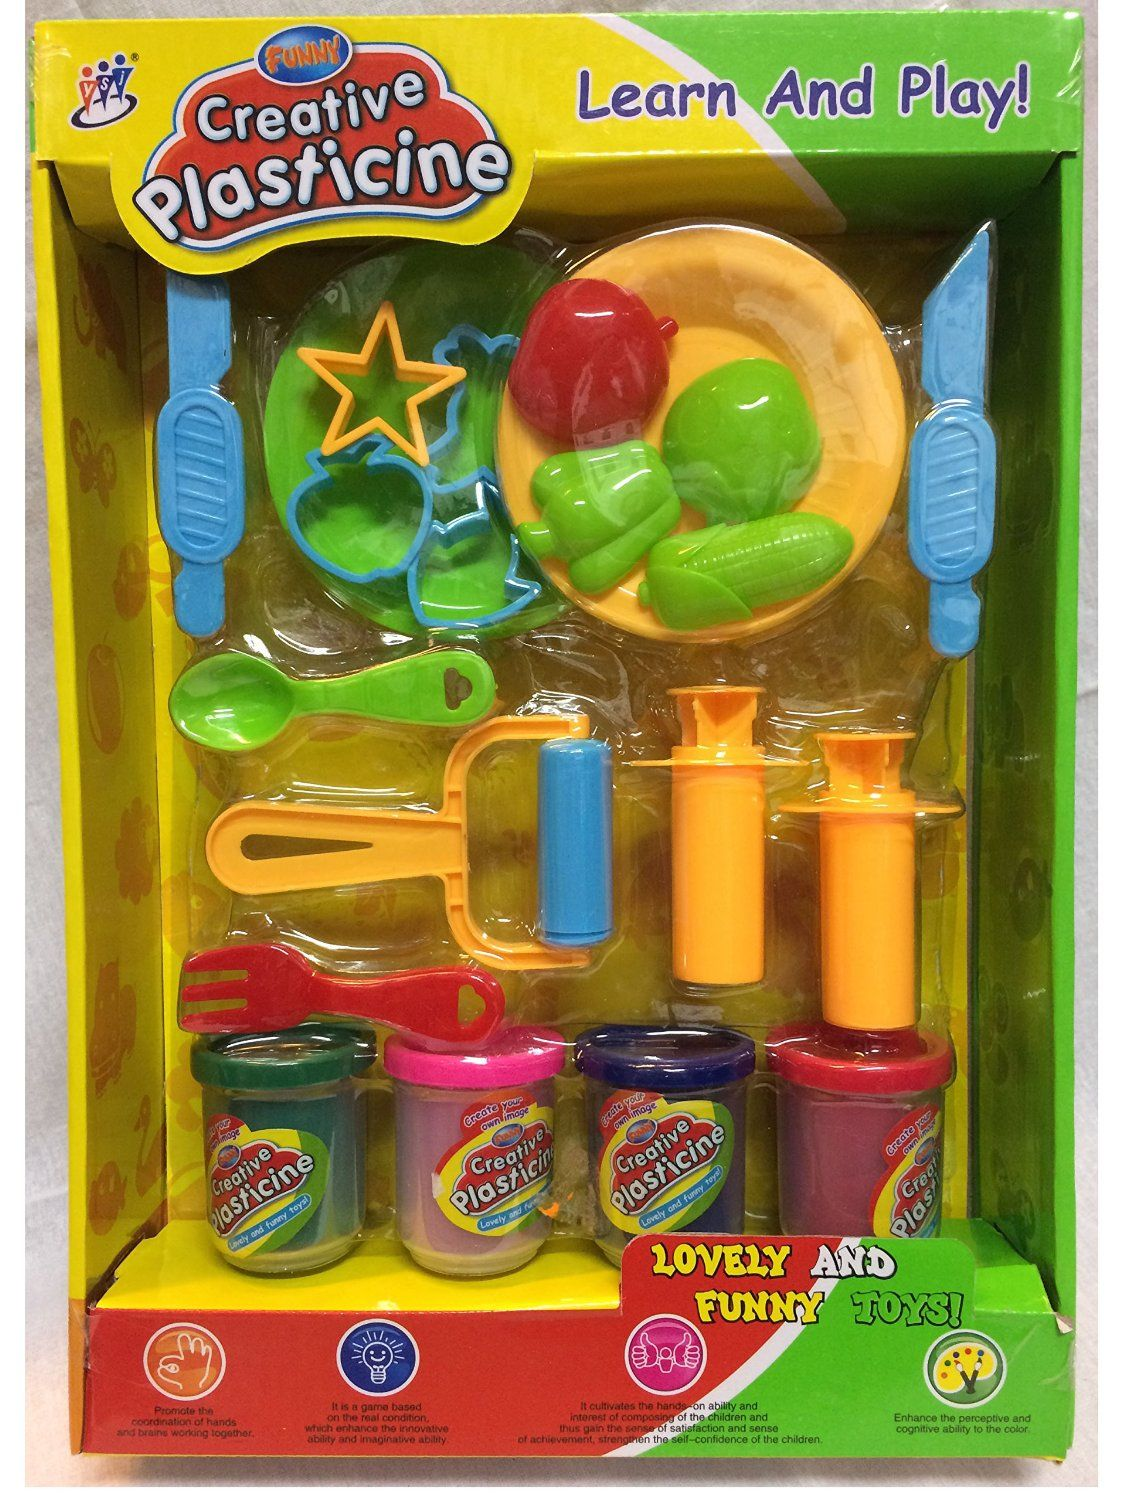 cfccbff9f Amazon.com: Creative Plasticine Play Dough And Modeling Clay Play set with  accessories: Toys & Games